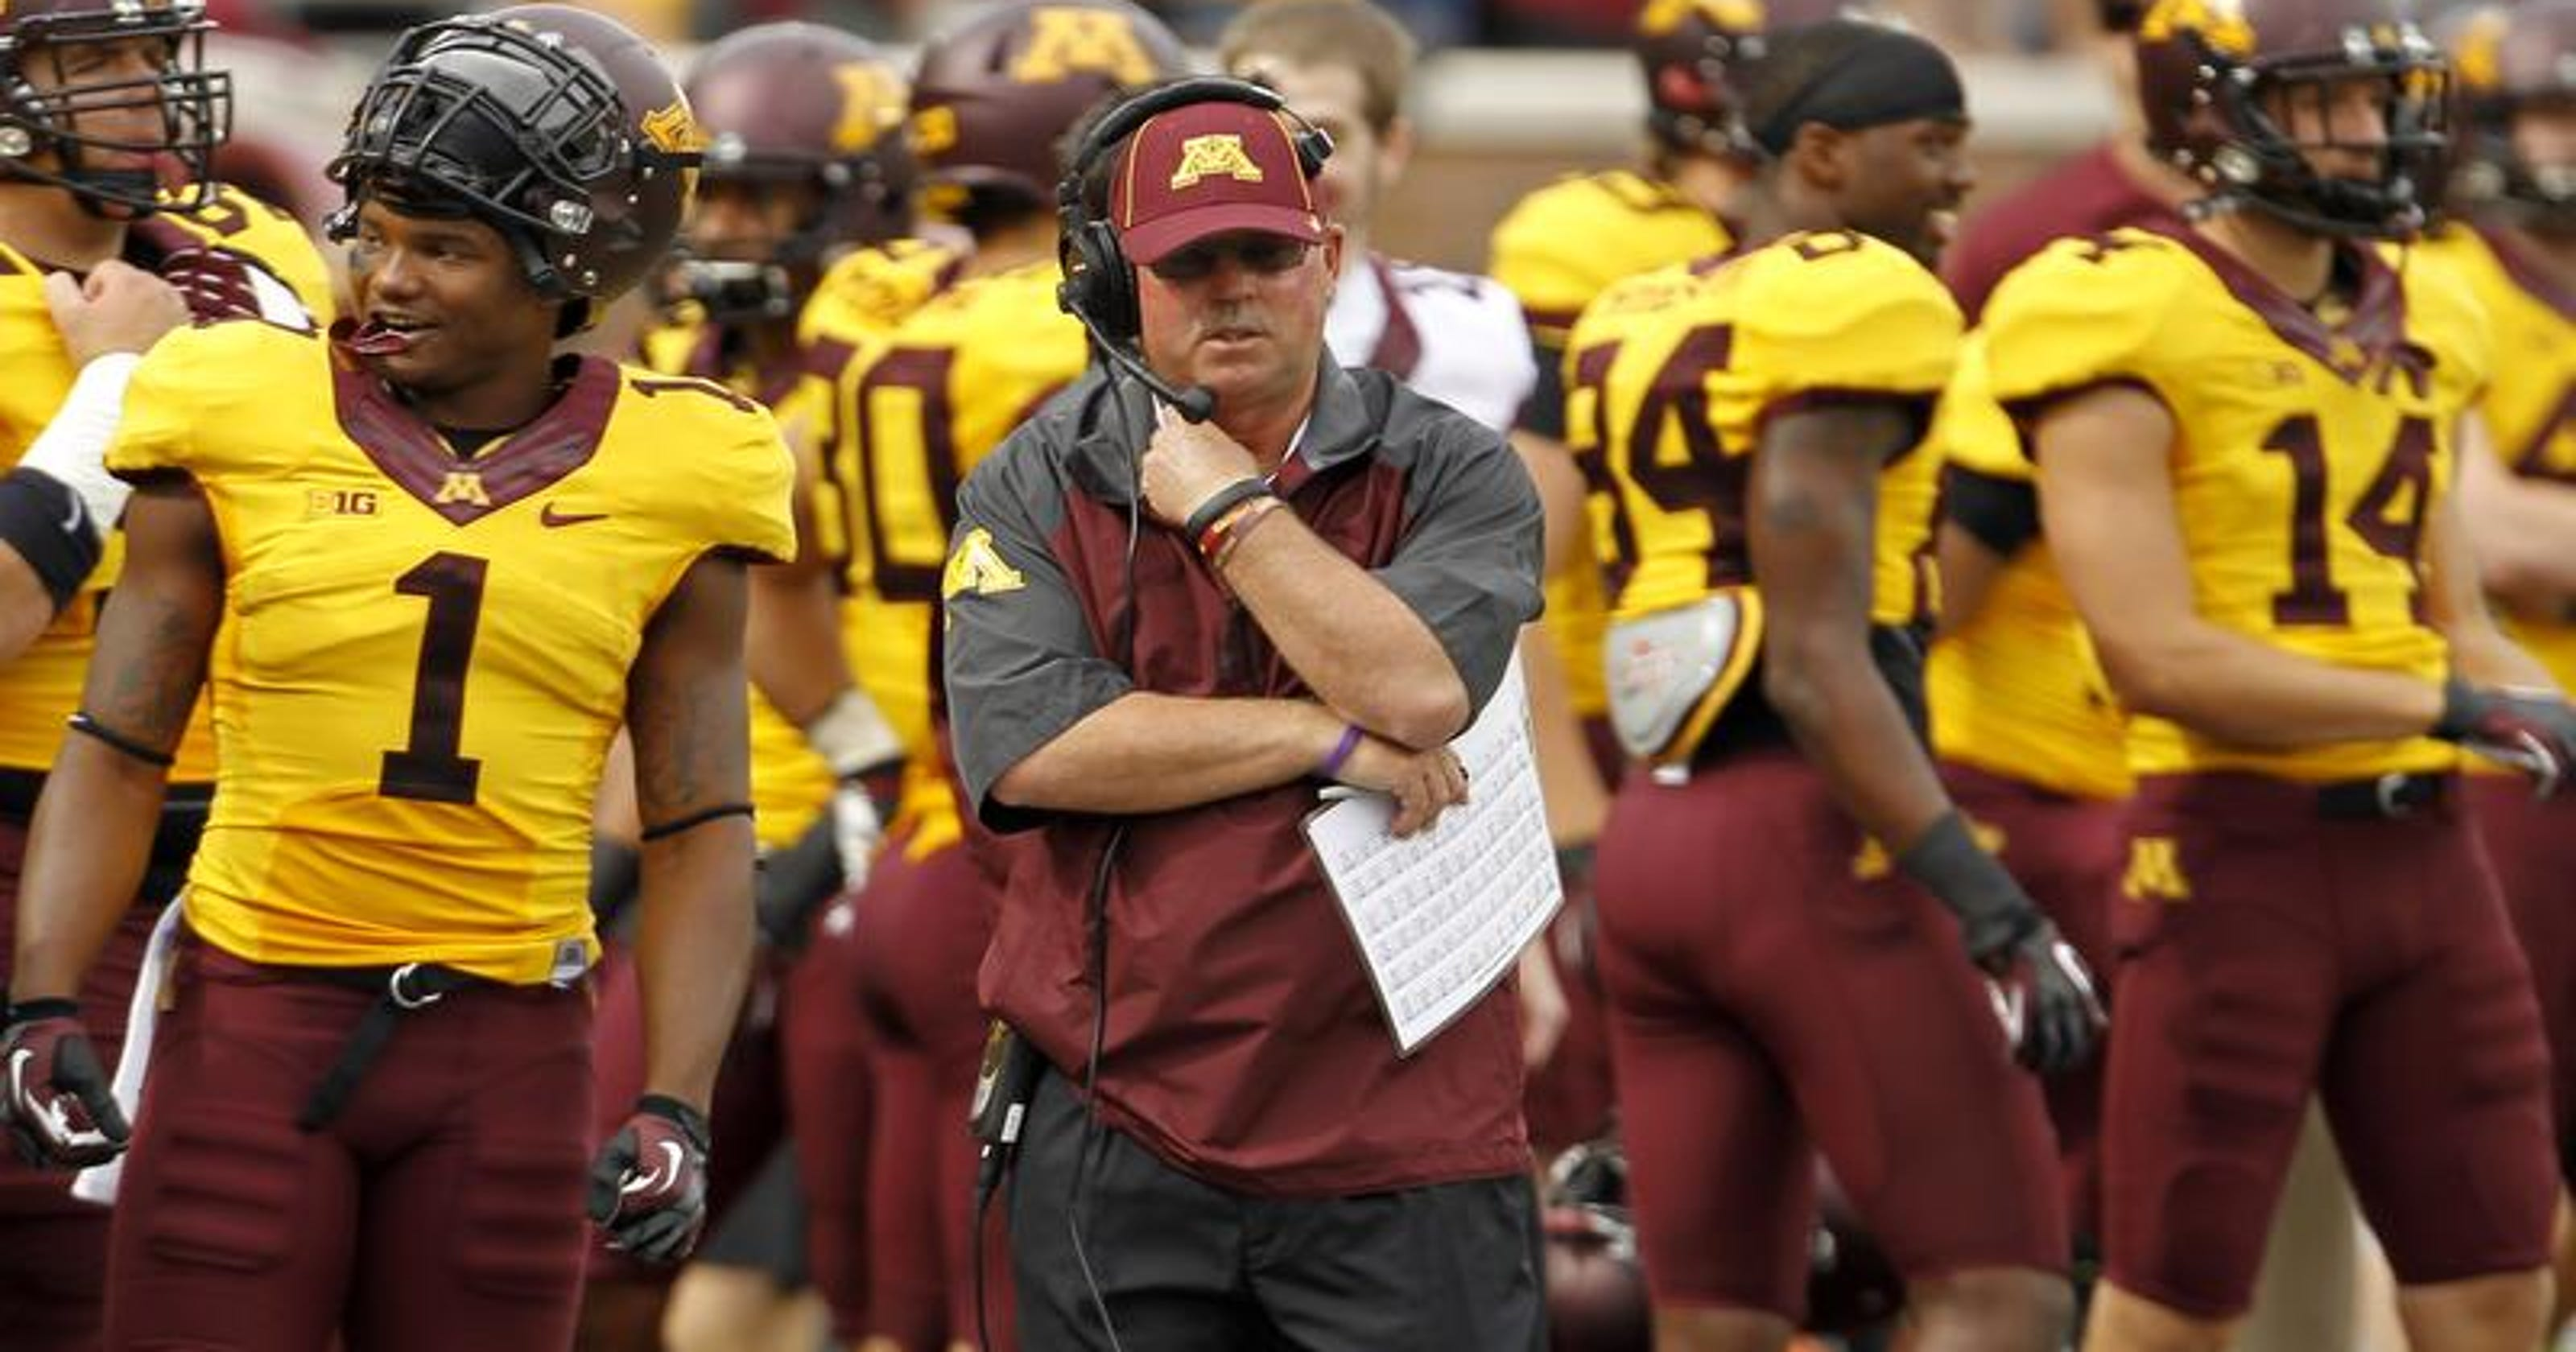 Minnesota AD has '100 percent' confidence in Gophers football coach